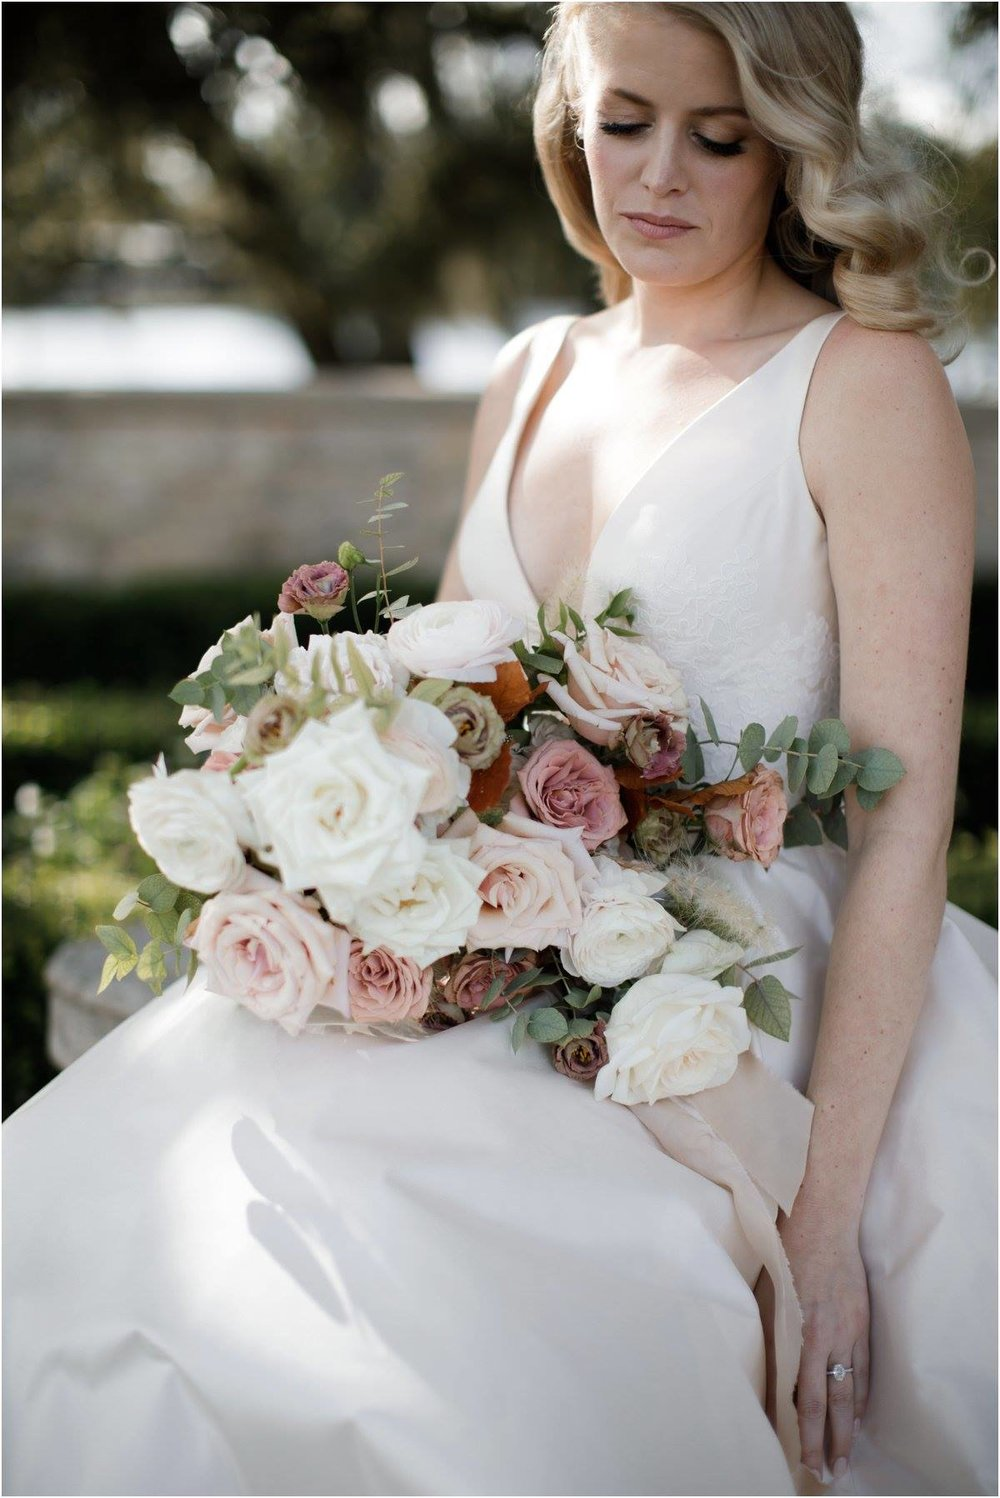 Bridal bouquet by Maxit Flower Design, Houston Oaks Country Club, Alyssa Meeks Event Planner, Silhouette Studios Photography